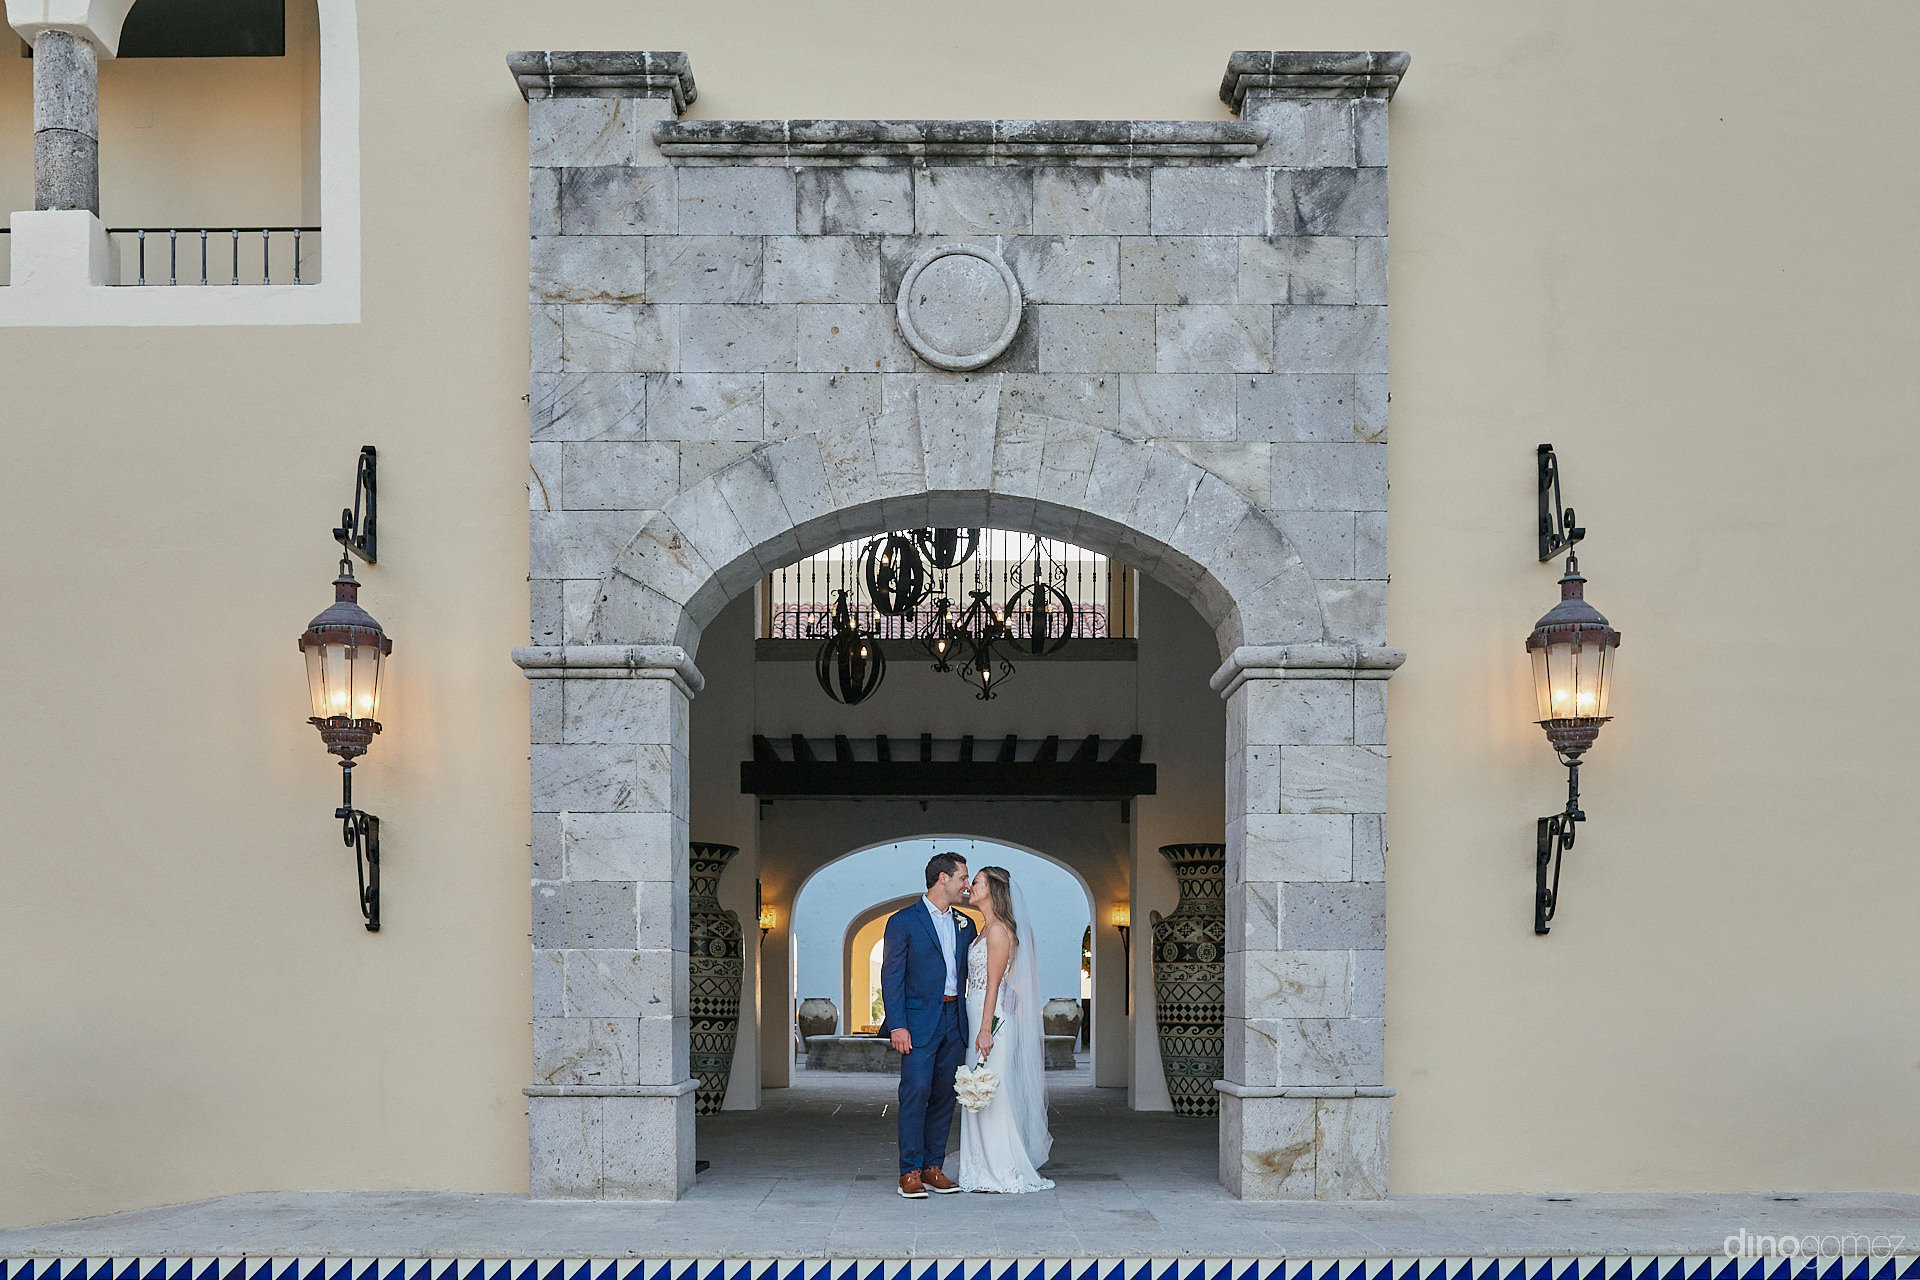 Commercial Photography & Videography Cabo San Lucas - Luxury Wedding Photographer In Cabo Dino Gomez - C&T